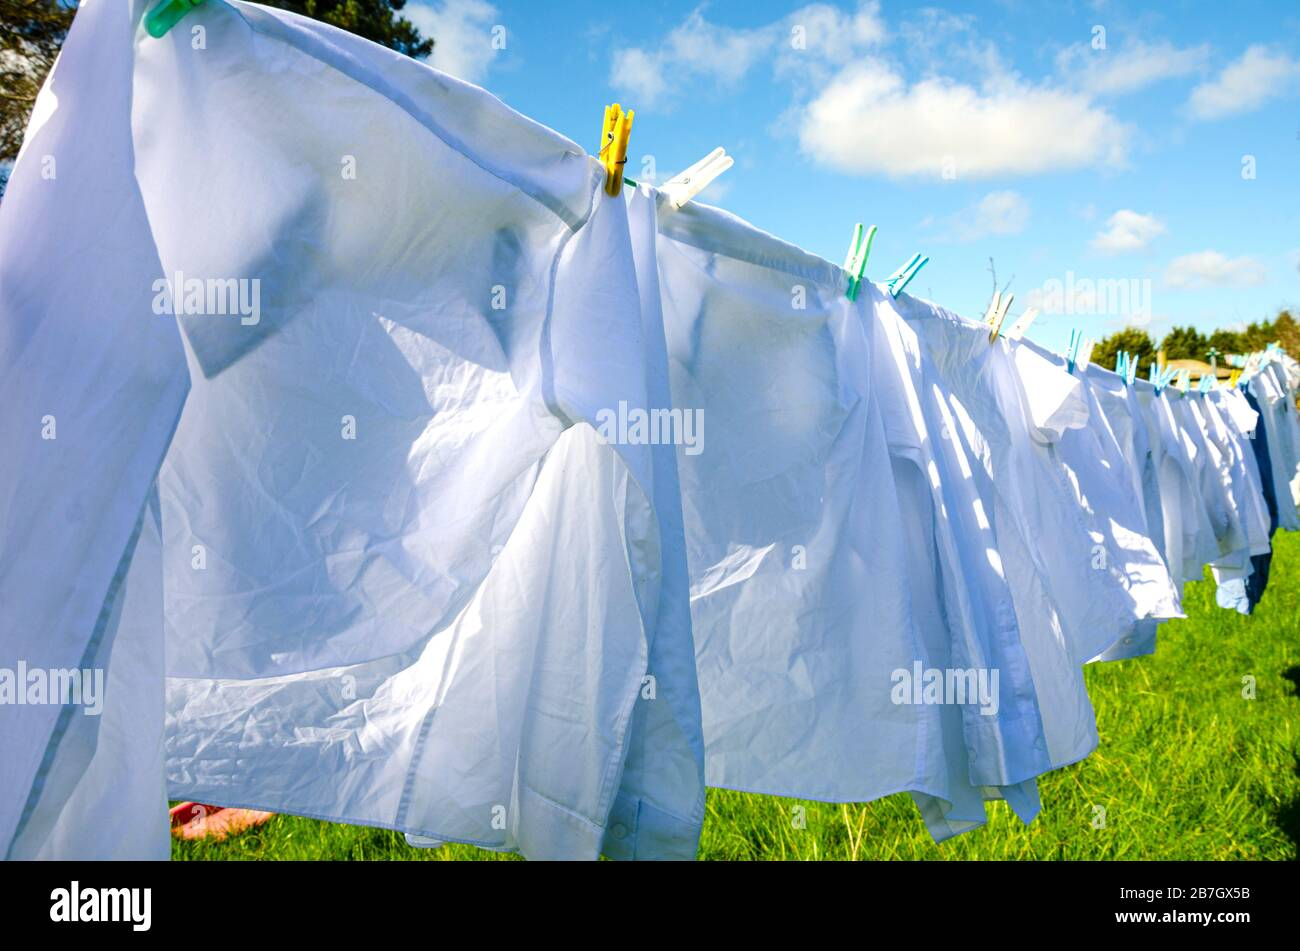 shirt-clothes-washing-line-laundry-drying-white-apparel-clean-cleanliness-cloth-clothes-line-clothesline-clothing-cotton-dry-fashion-g-2B7GX5B.jpg